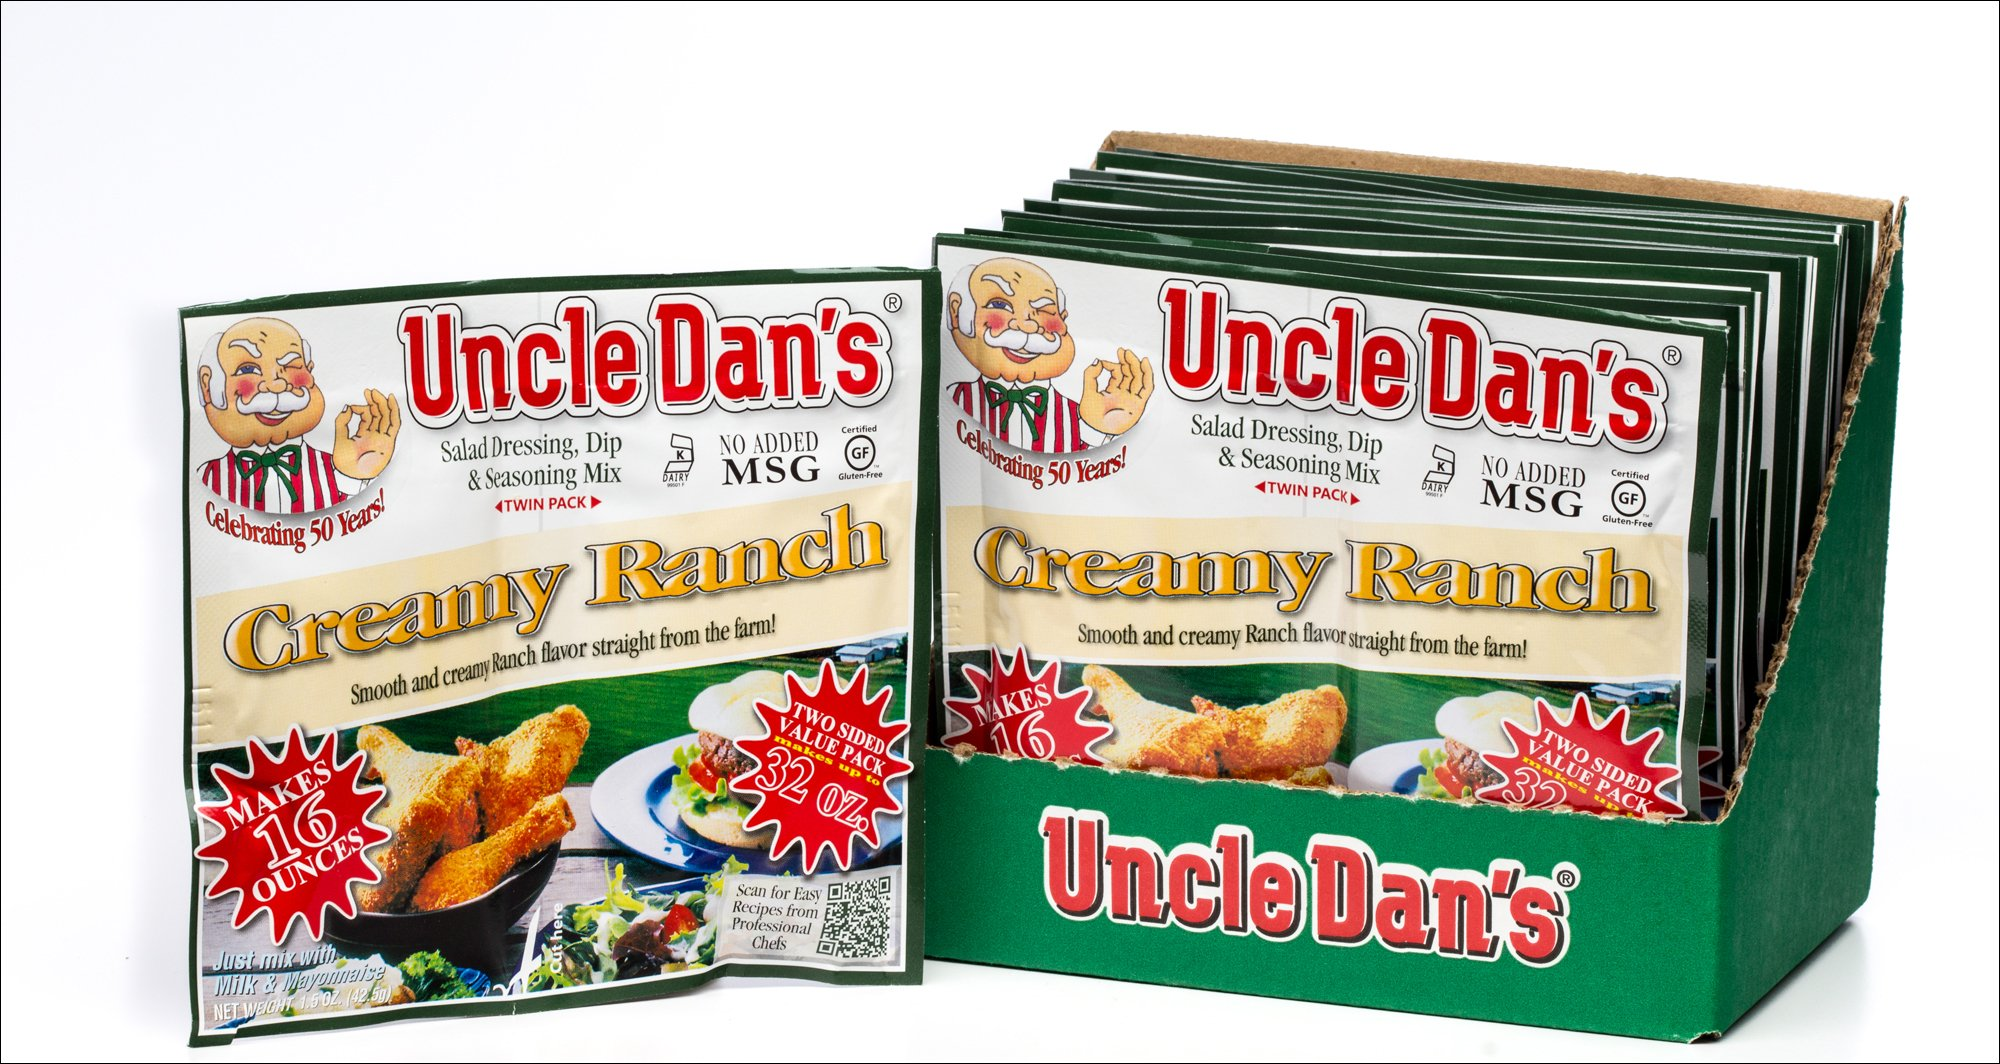 Uncle Dan's Dips, Seasonings and Salad Dressings Mix Packets - Creamy Ranch - Twin Pack - 12 Pack Case For the Perfect Homemade Flavor in Your Dry Rubs, Pasta Sauces & Marinades by Uncle Dan's